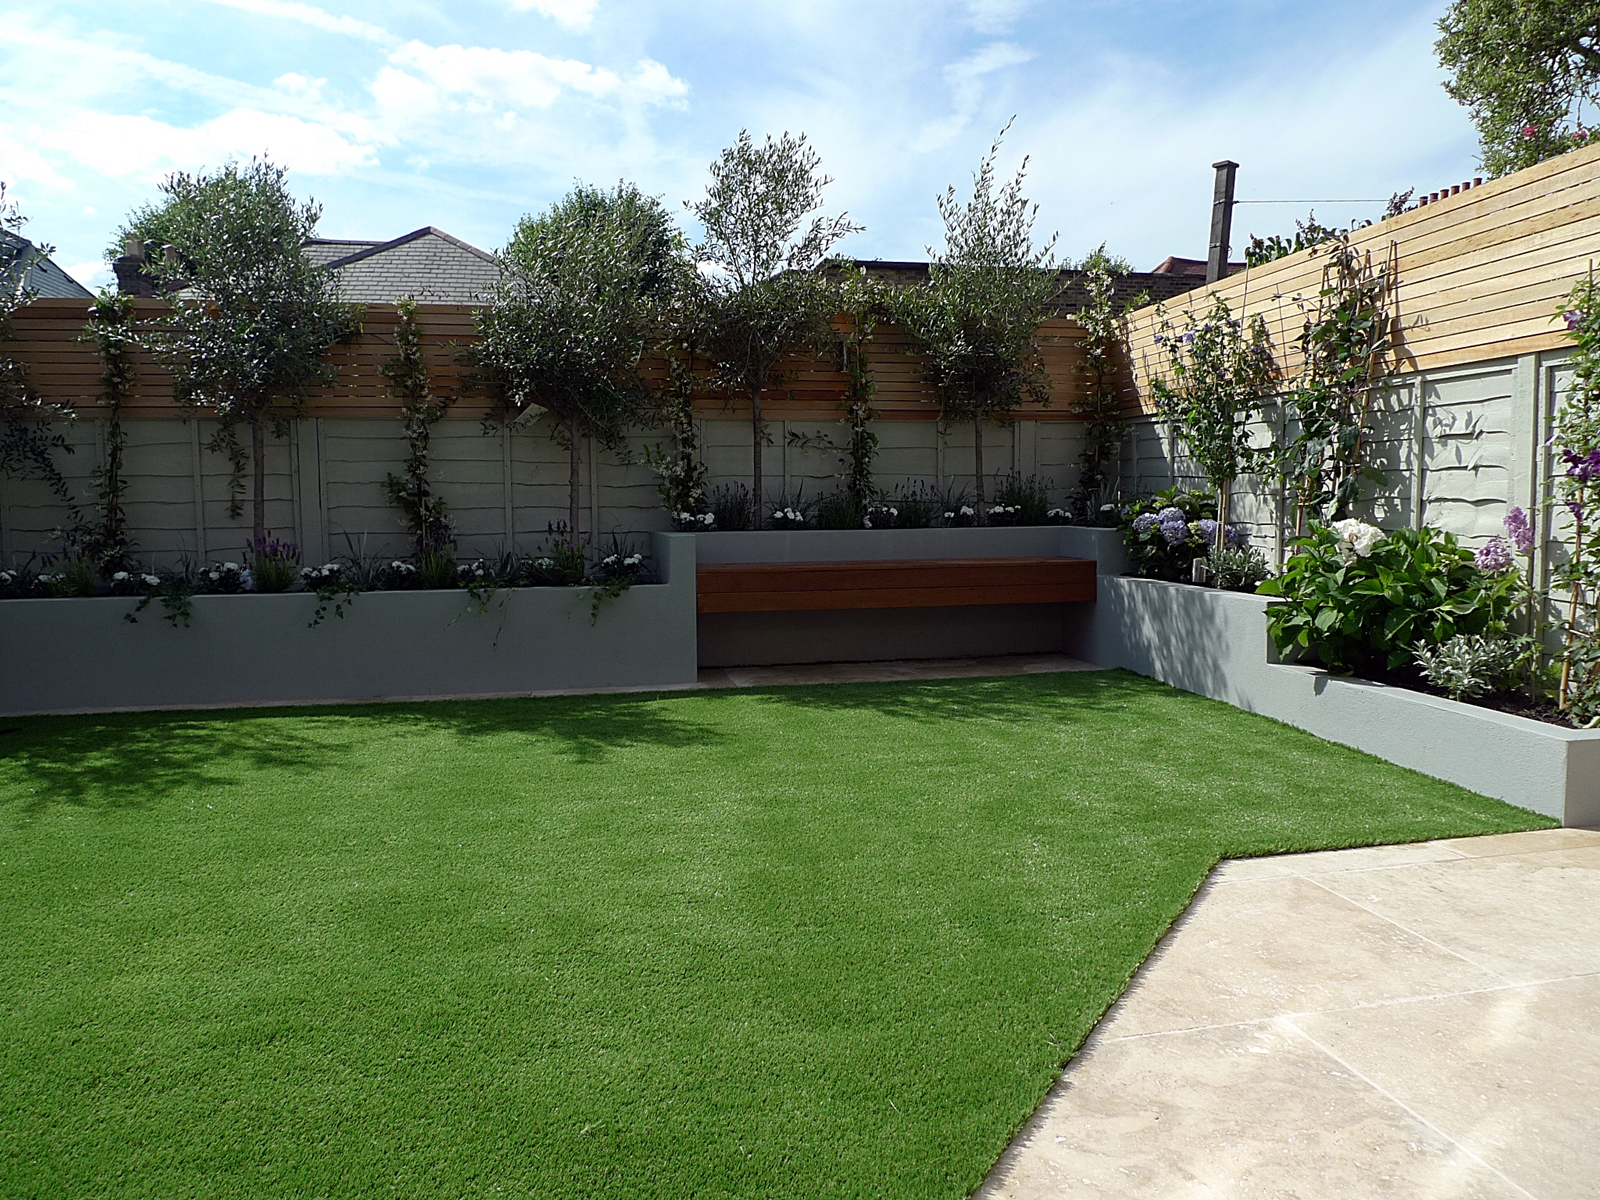 small garden design contemporary low maintenance designer putney peckham battersea balham clapham fulham chelsea balham london